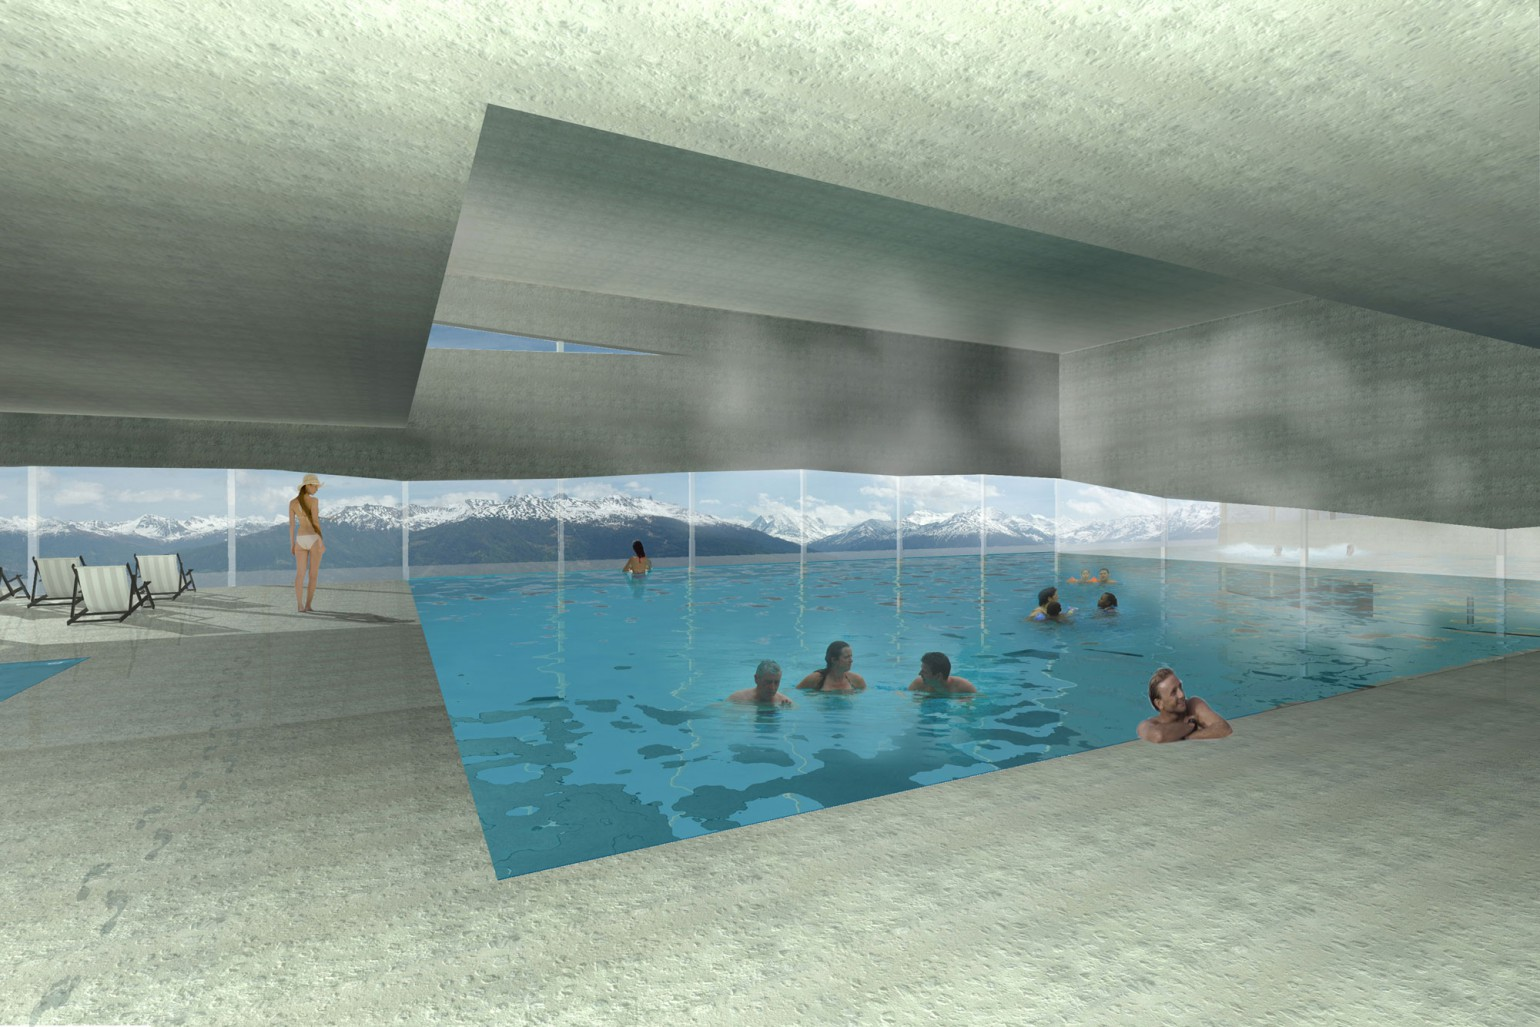 Piscine thermale meyer architecture sion for Piscine thermale